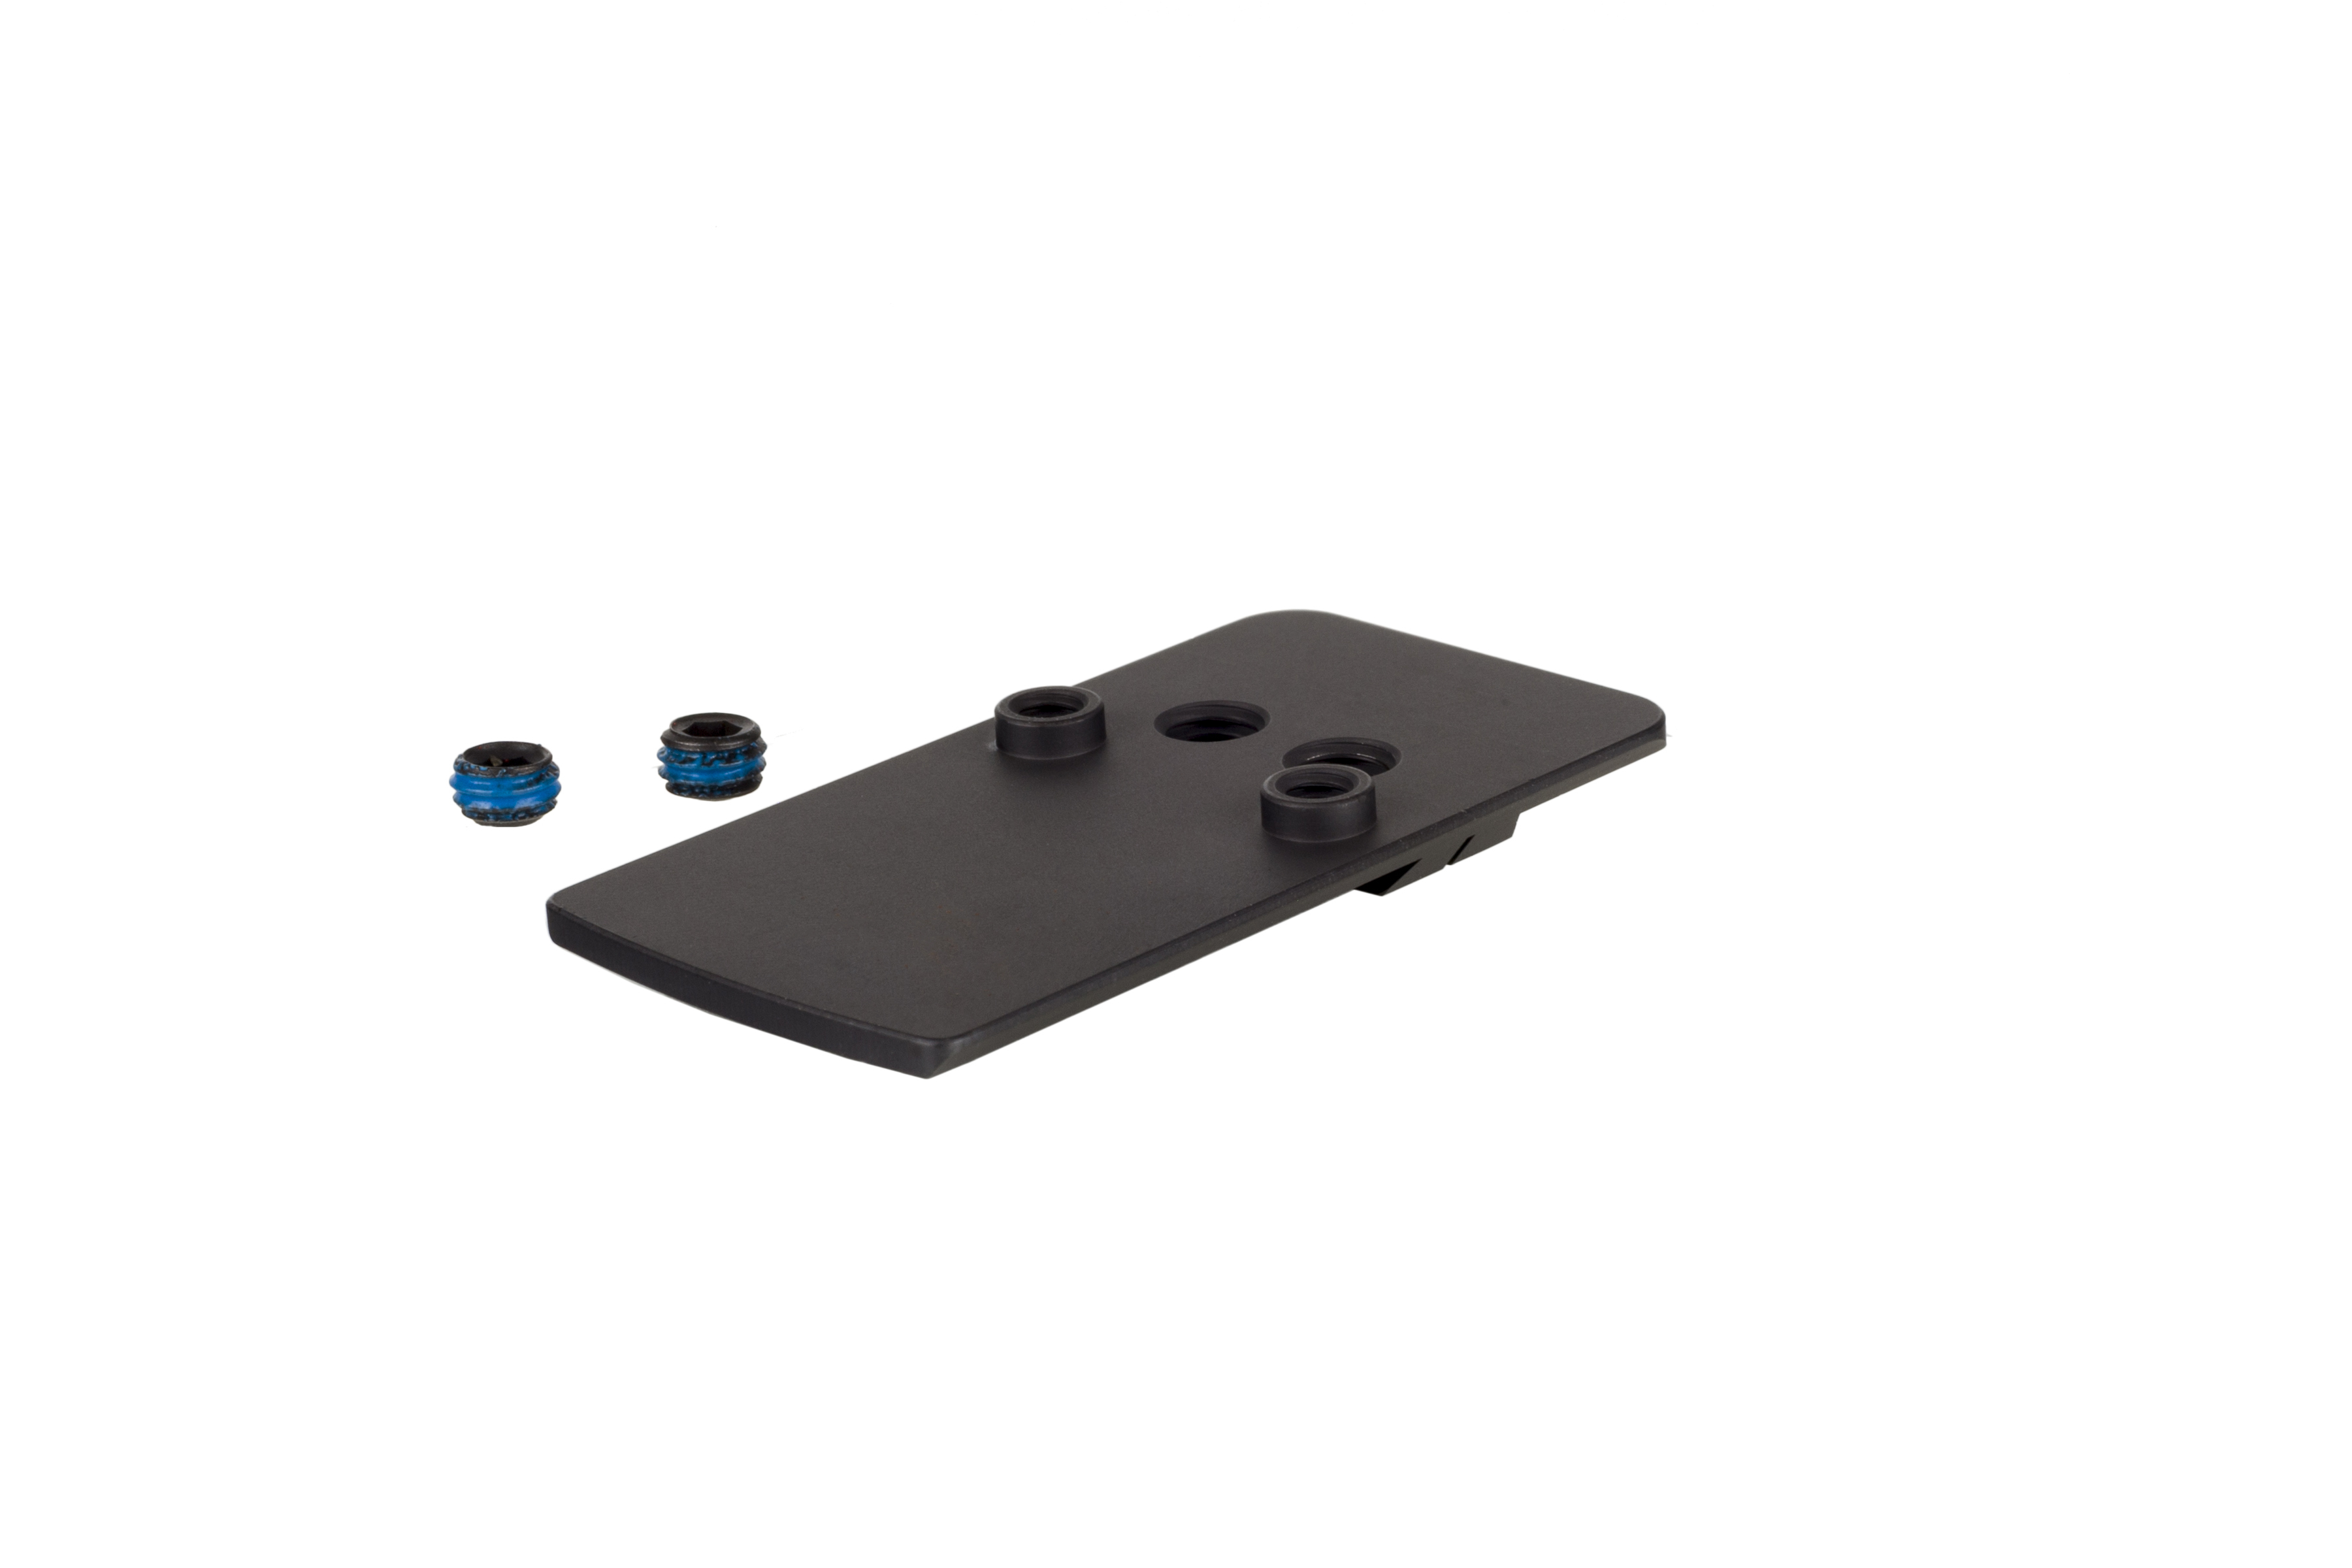 RMR®cc Pistol Dovetail Mount for Smith & Wesson M&P Bodyguard .380